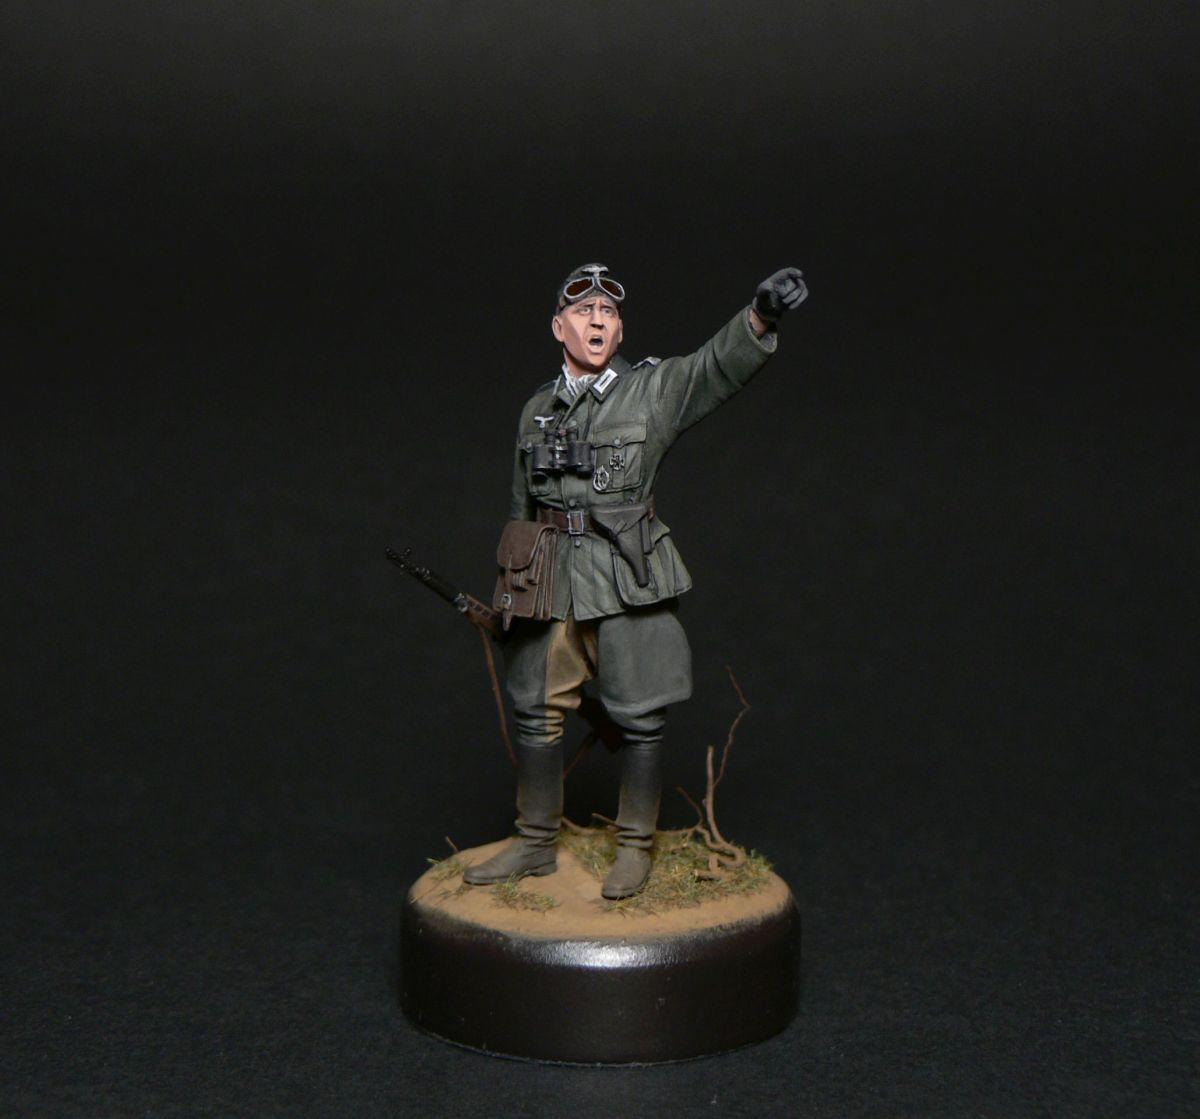 Figures: Oberleutnant, photo #4